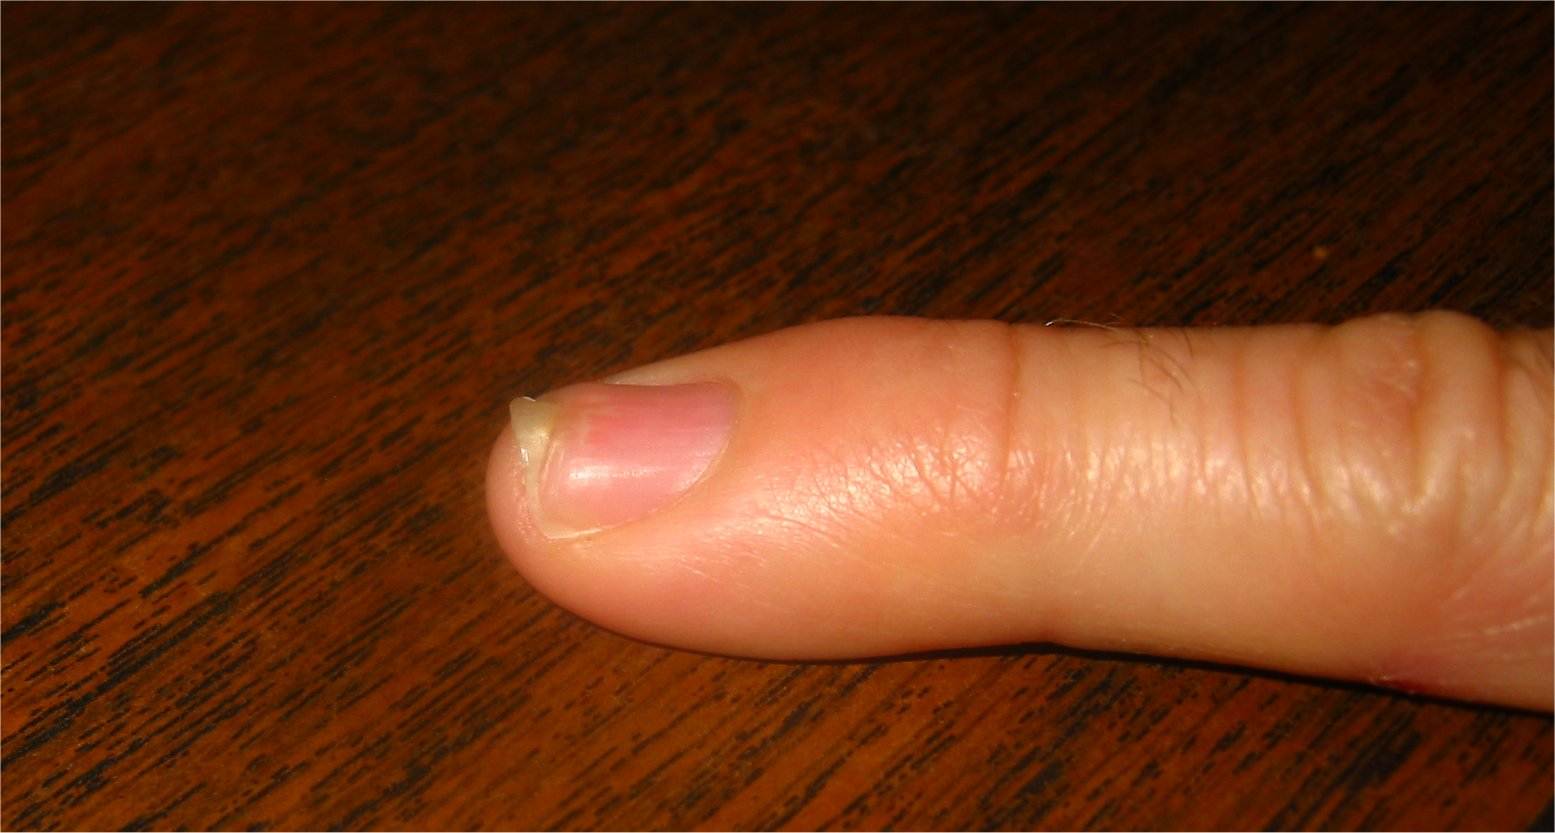 Fingernail recovering from smash - soul-amp.com